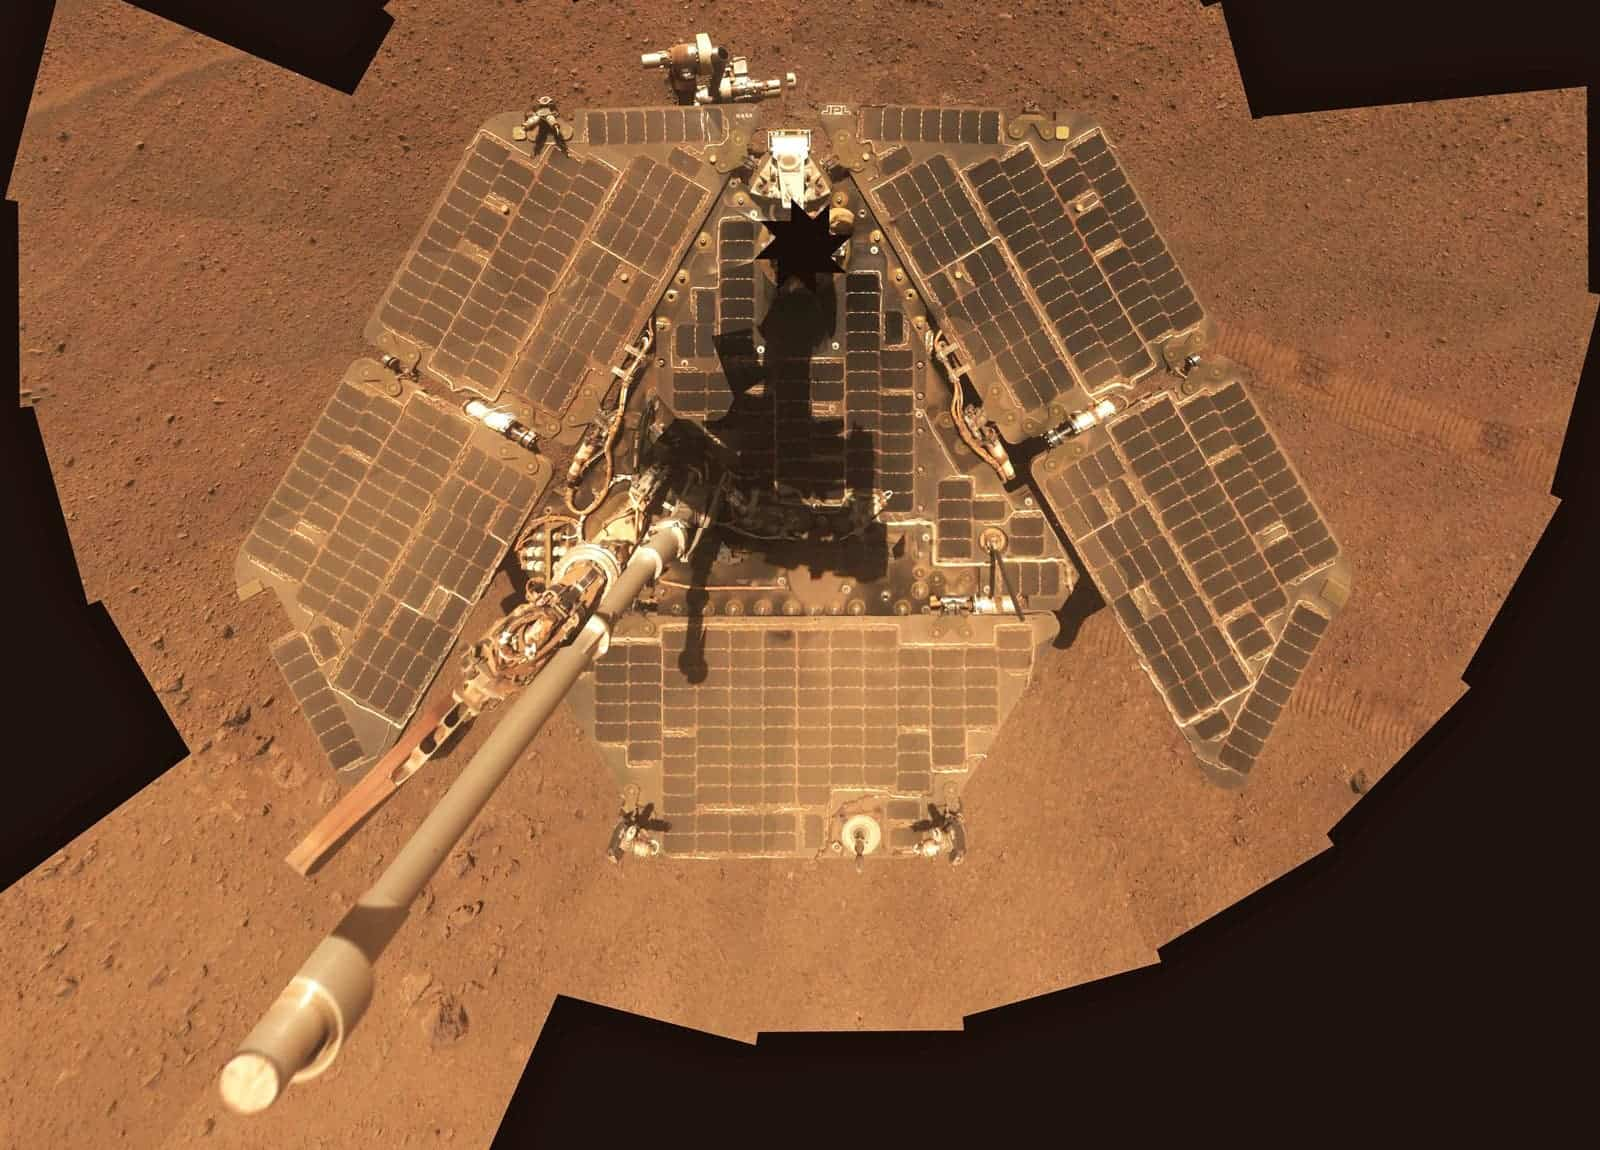 NASA Opportunity rover's life in limbo as Mars dust storm rages on